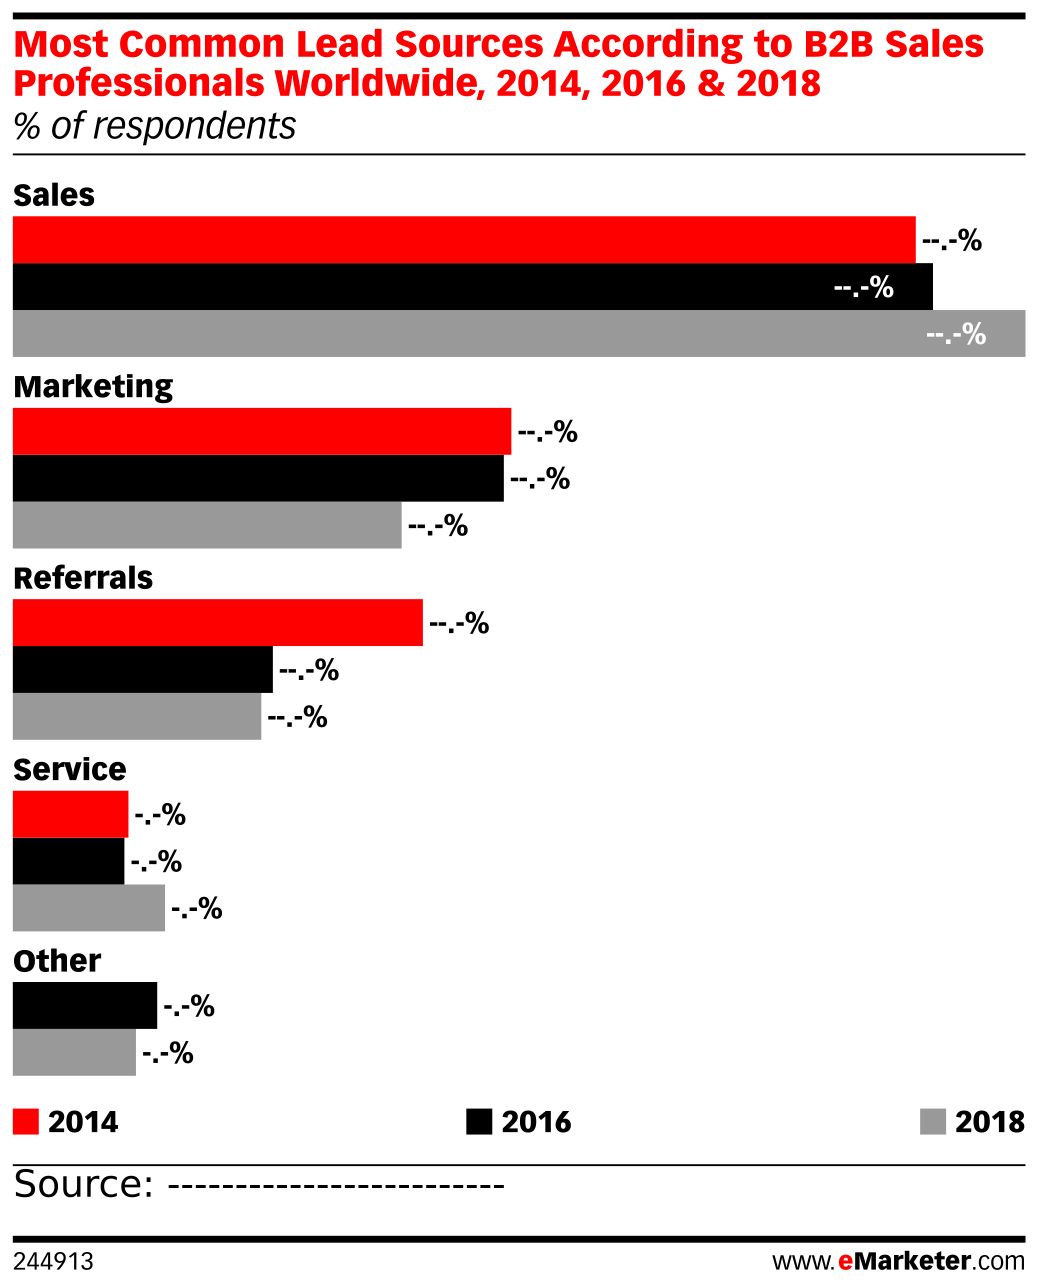 Most Common Lead Sources According to B2B Sales Professionals Worldwide, 2014, 2016 & 2018 (% of respondents)